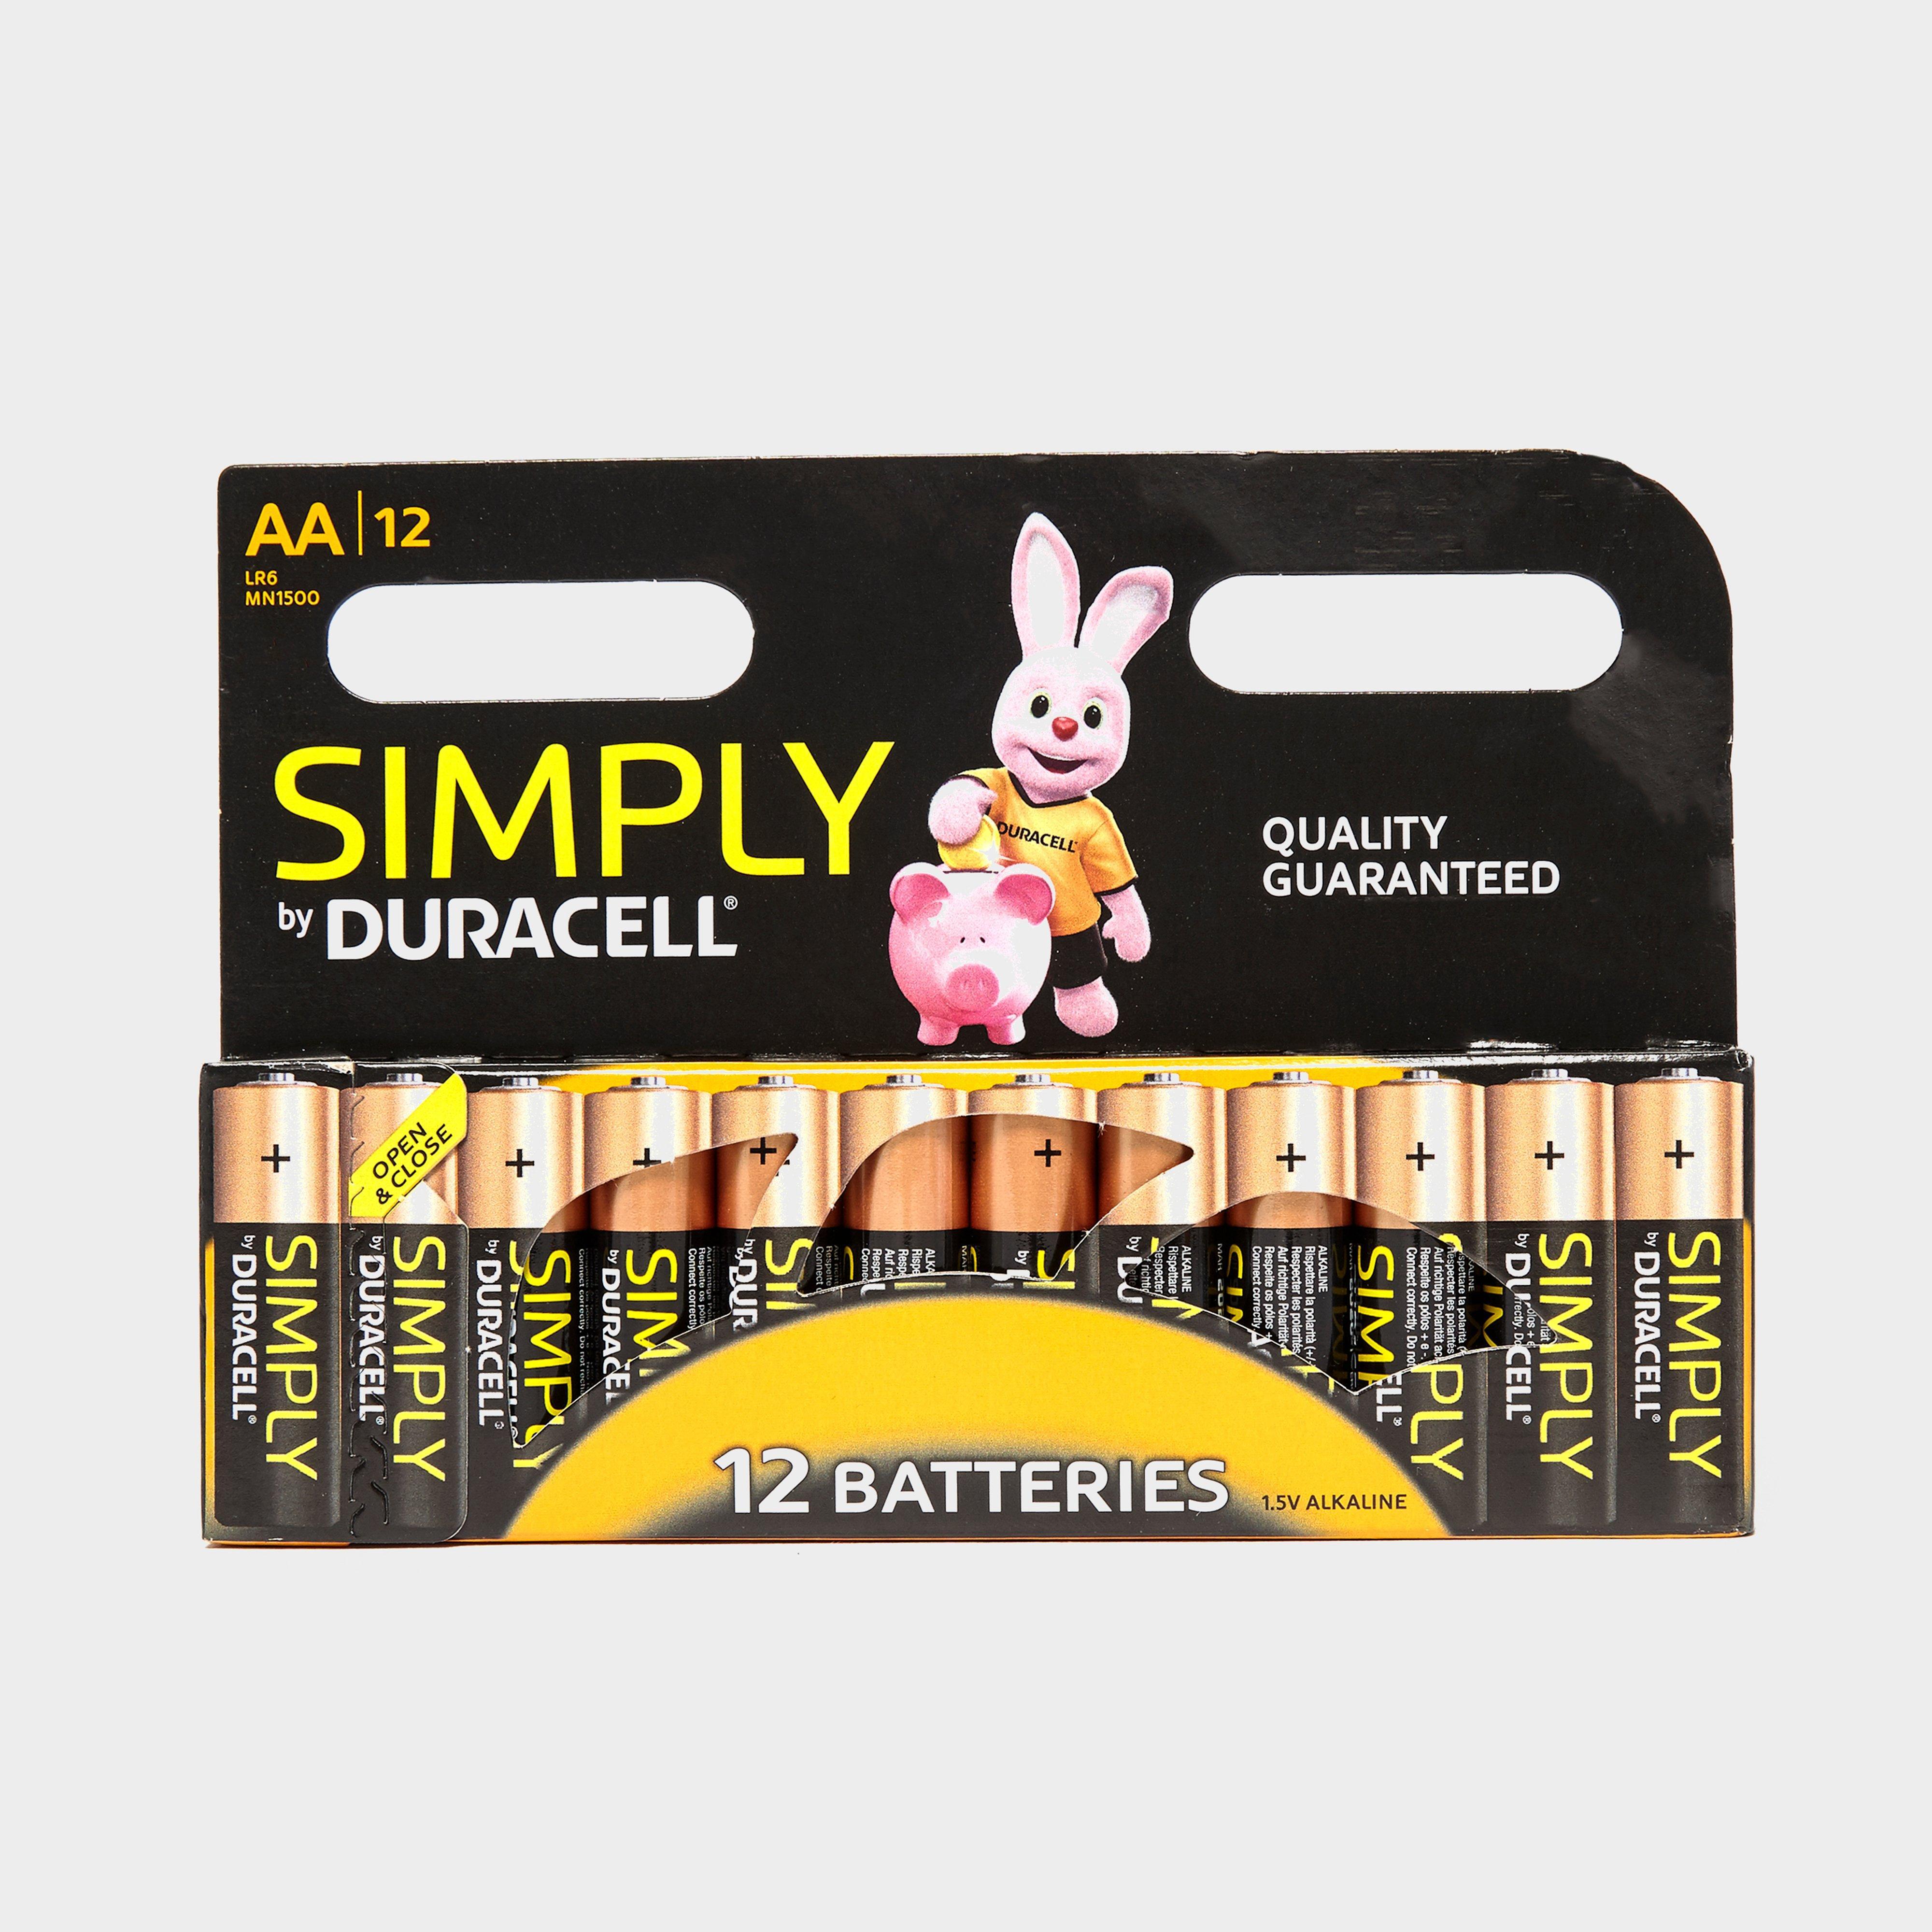 Duracell AA Batteries 12 Pack Assorted